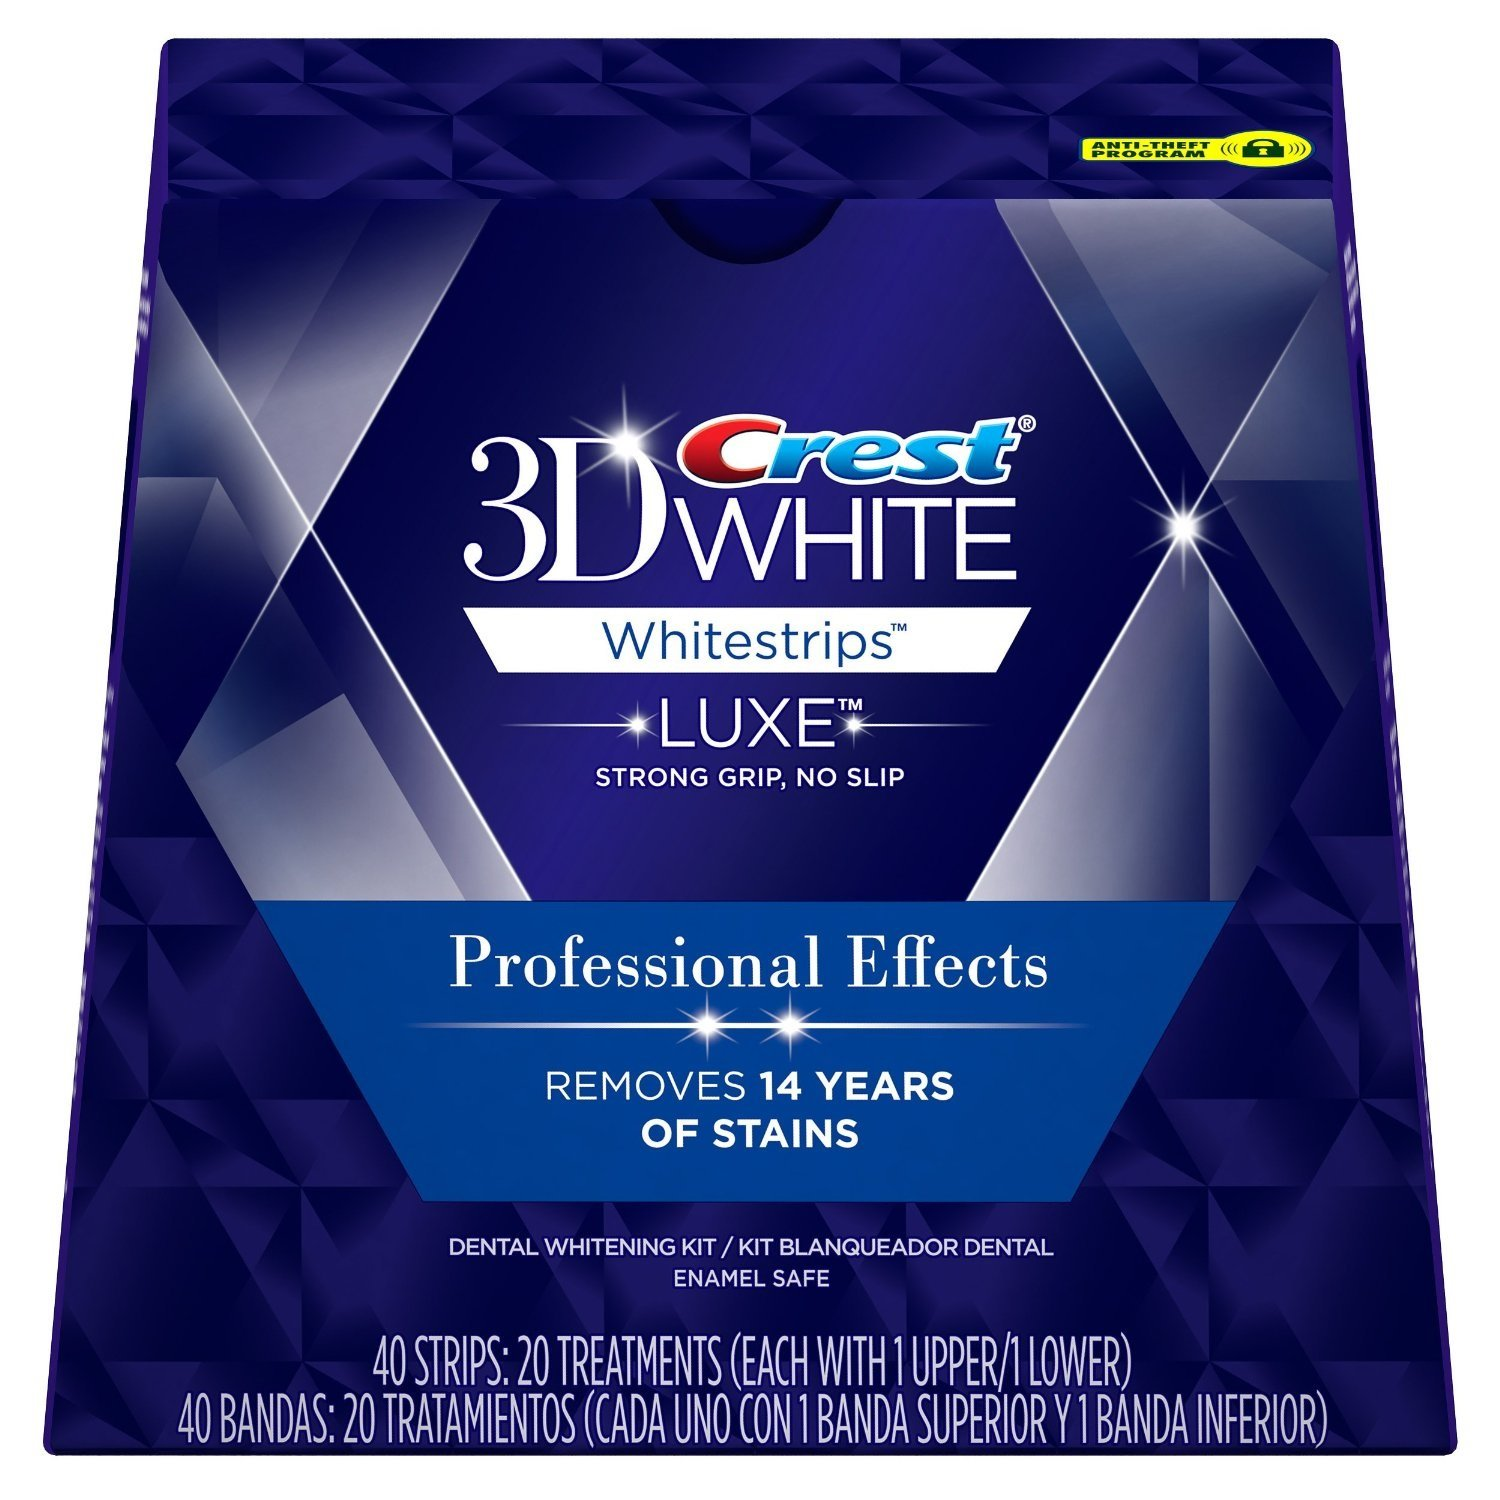 Crest 3D White Luxe Whitestrips Professional Effects - Teeth Whitening Kit 20 Treatments (40 Strips) Per Box - 5 Boxes